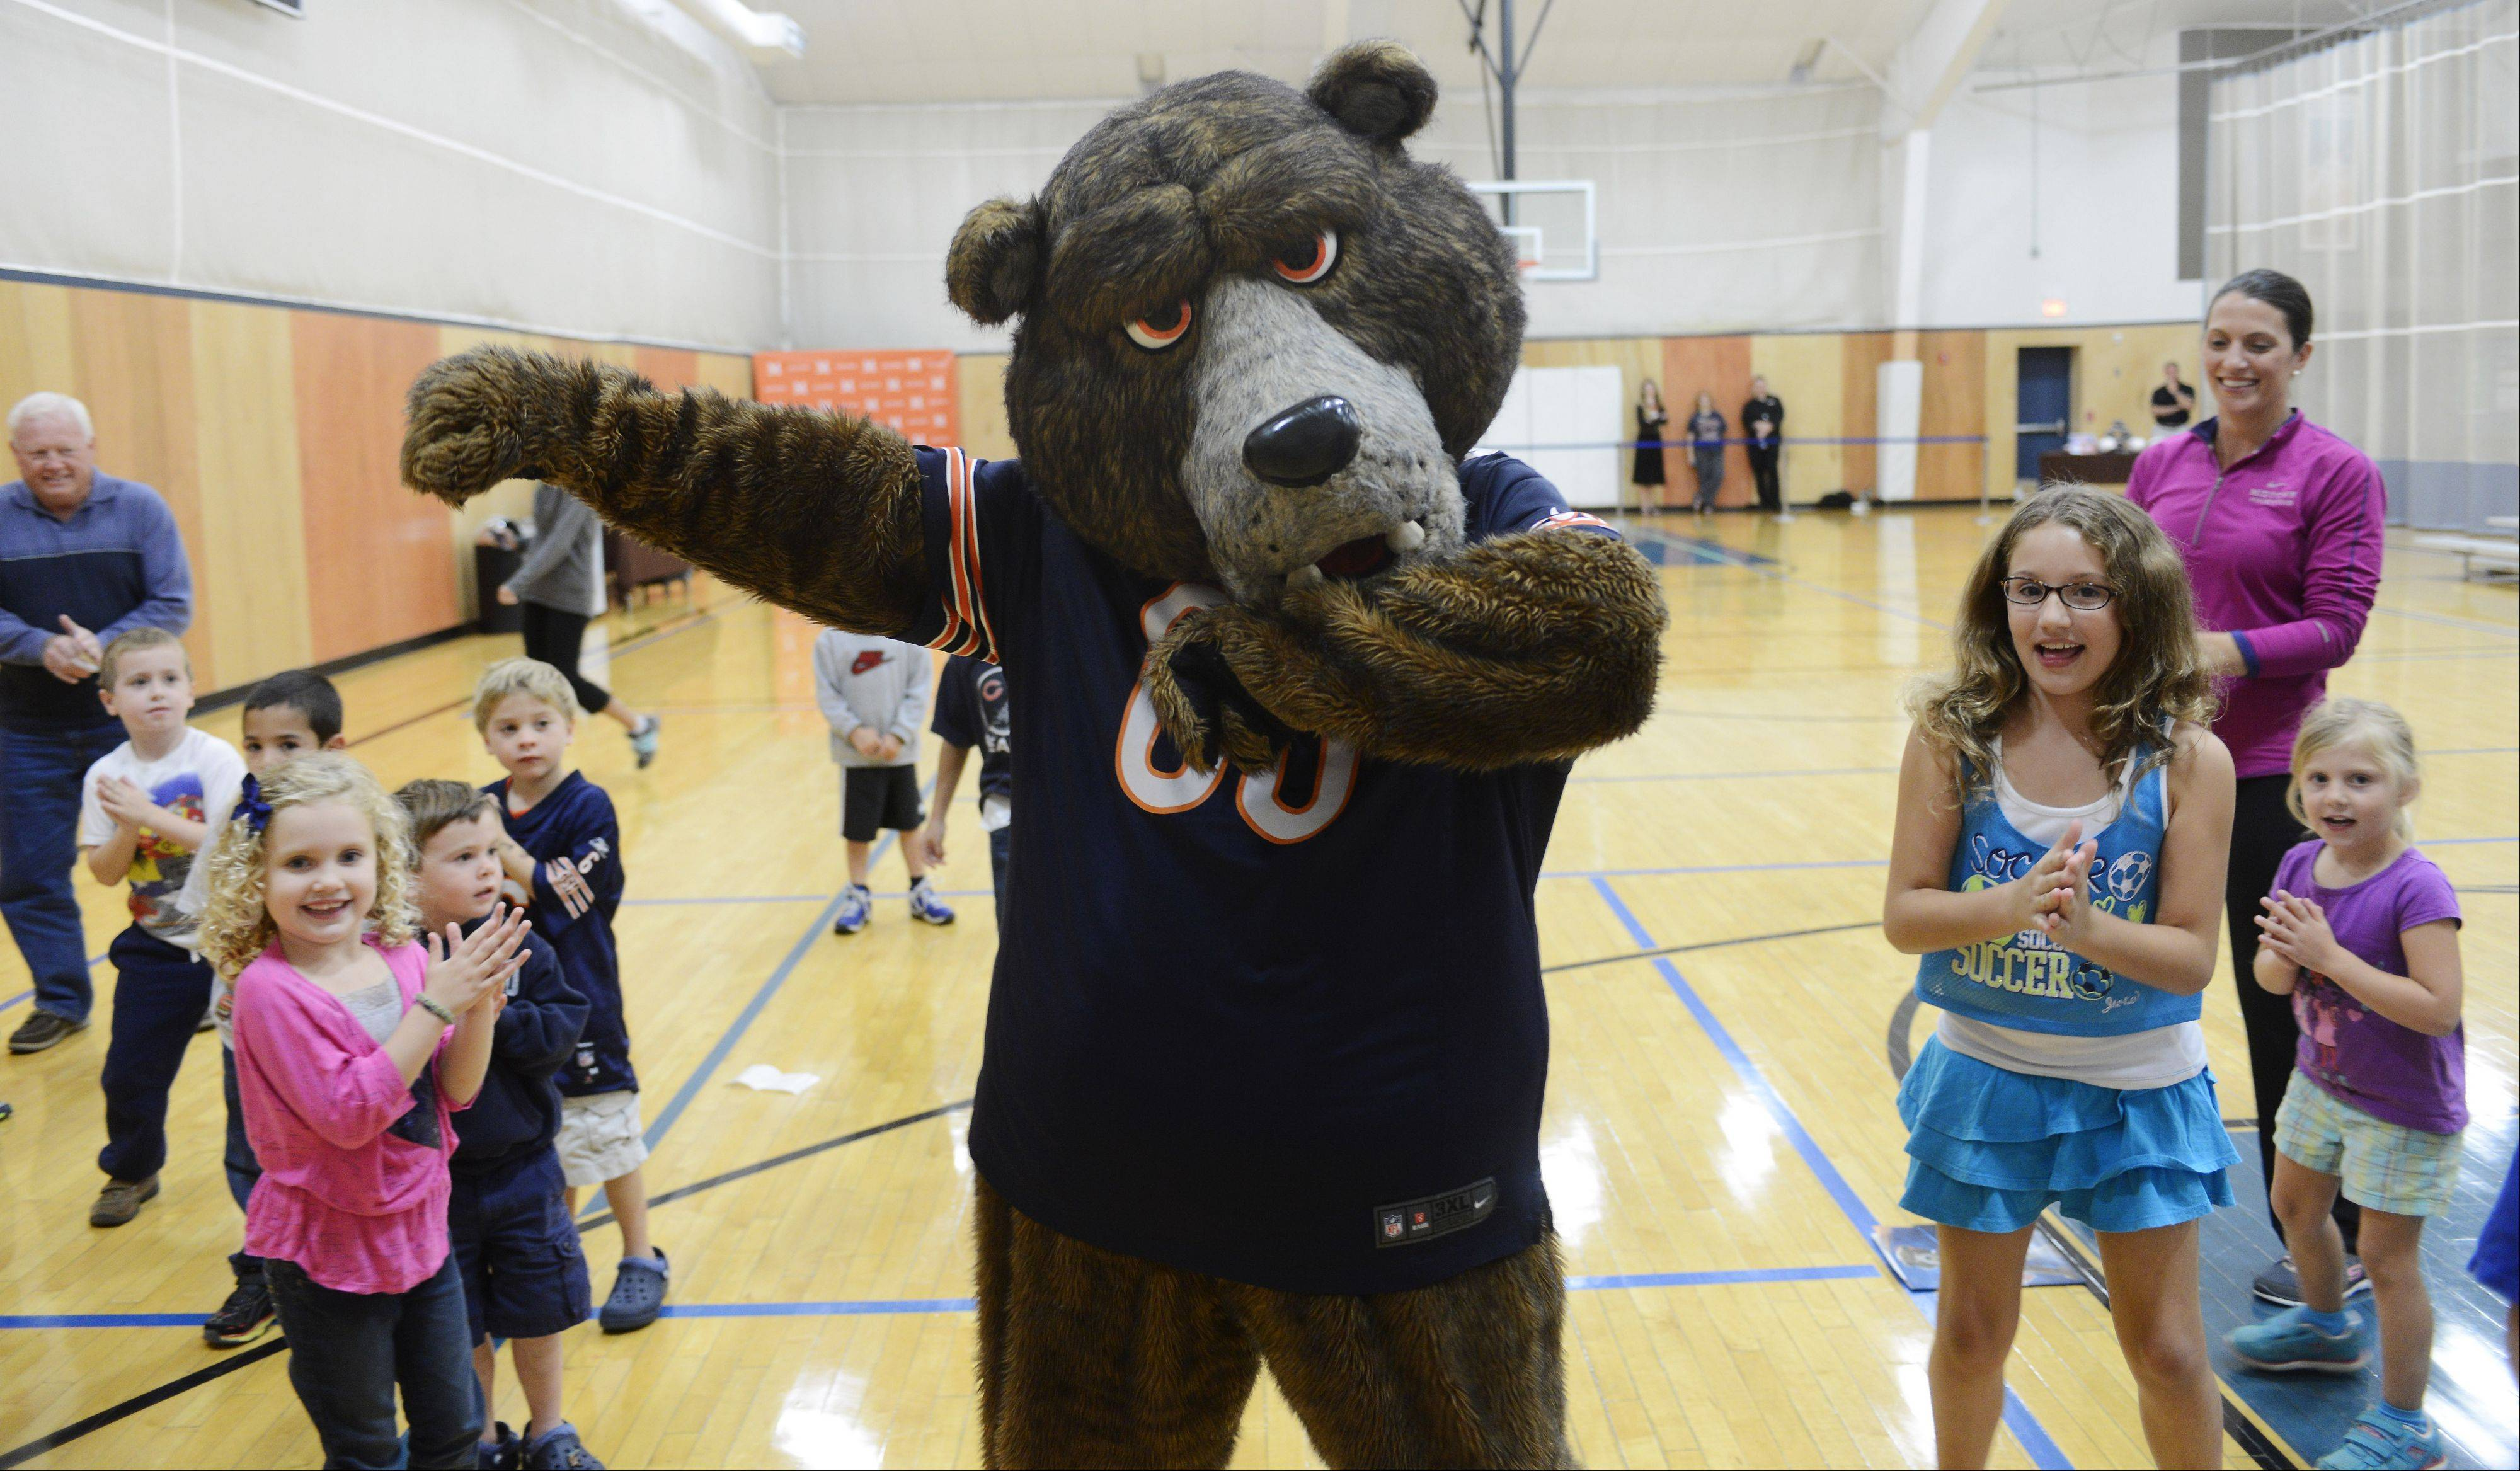 Staley 'Da Bear' dances with kids during a fitness event for children Tuesday at the Midtown Athletic Club in Palatine. Joining Staley at the event was Bears safety Craig Steltz.